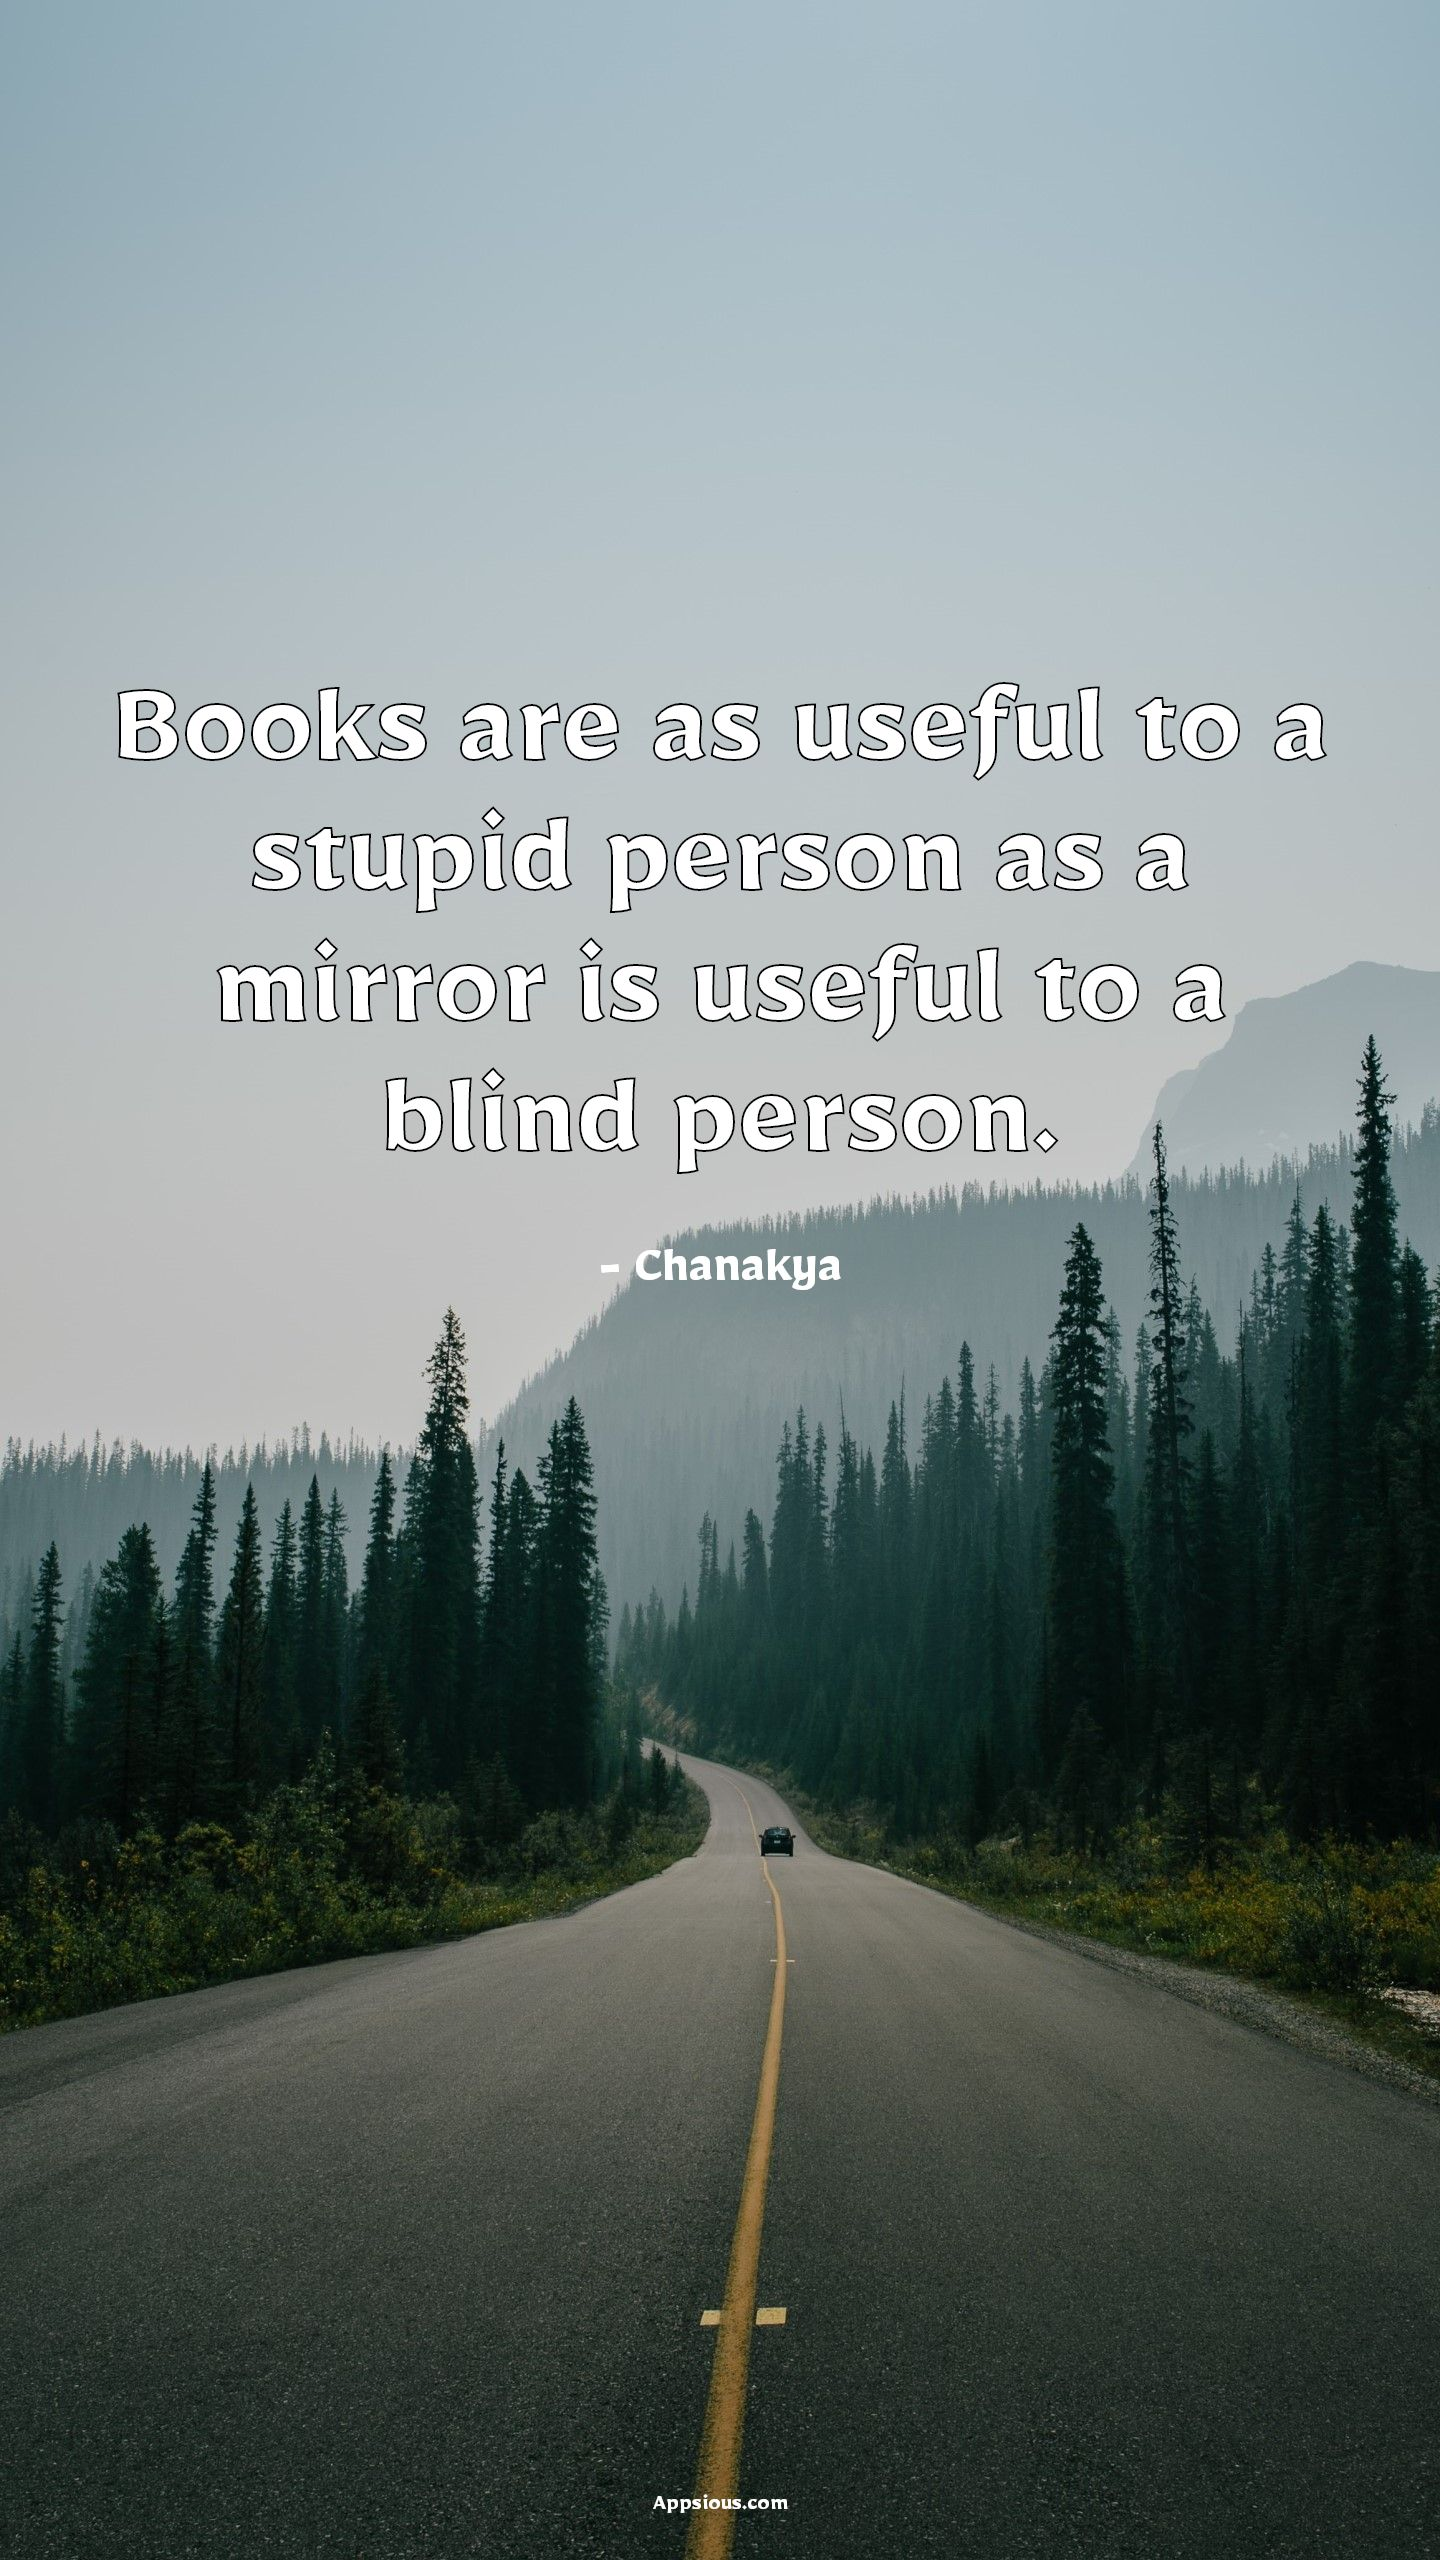 Books are as useful to a stupid person as a mirror is useful to a blind person.